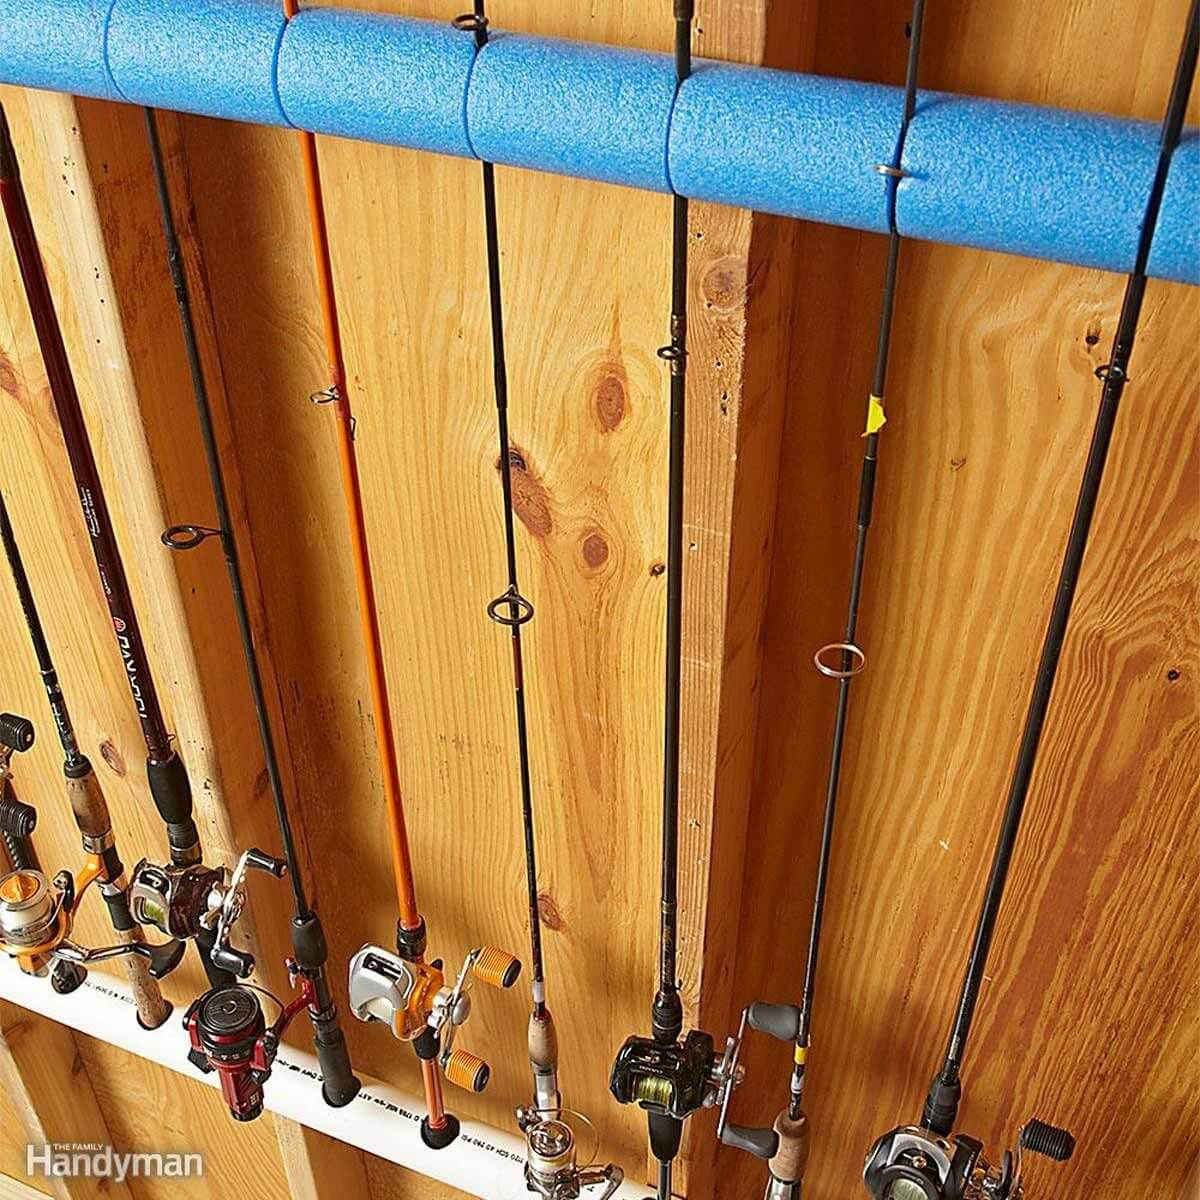 ORGANIZE FISHING RODS IN 2 CAR GARAGE IDEAS